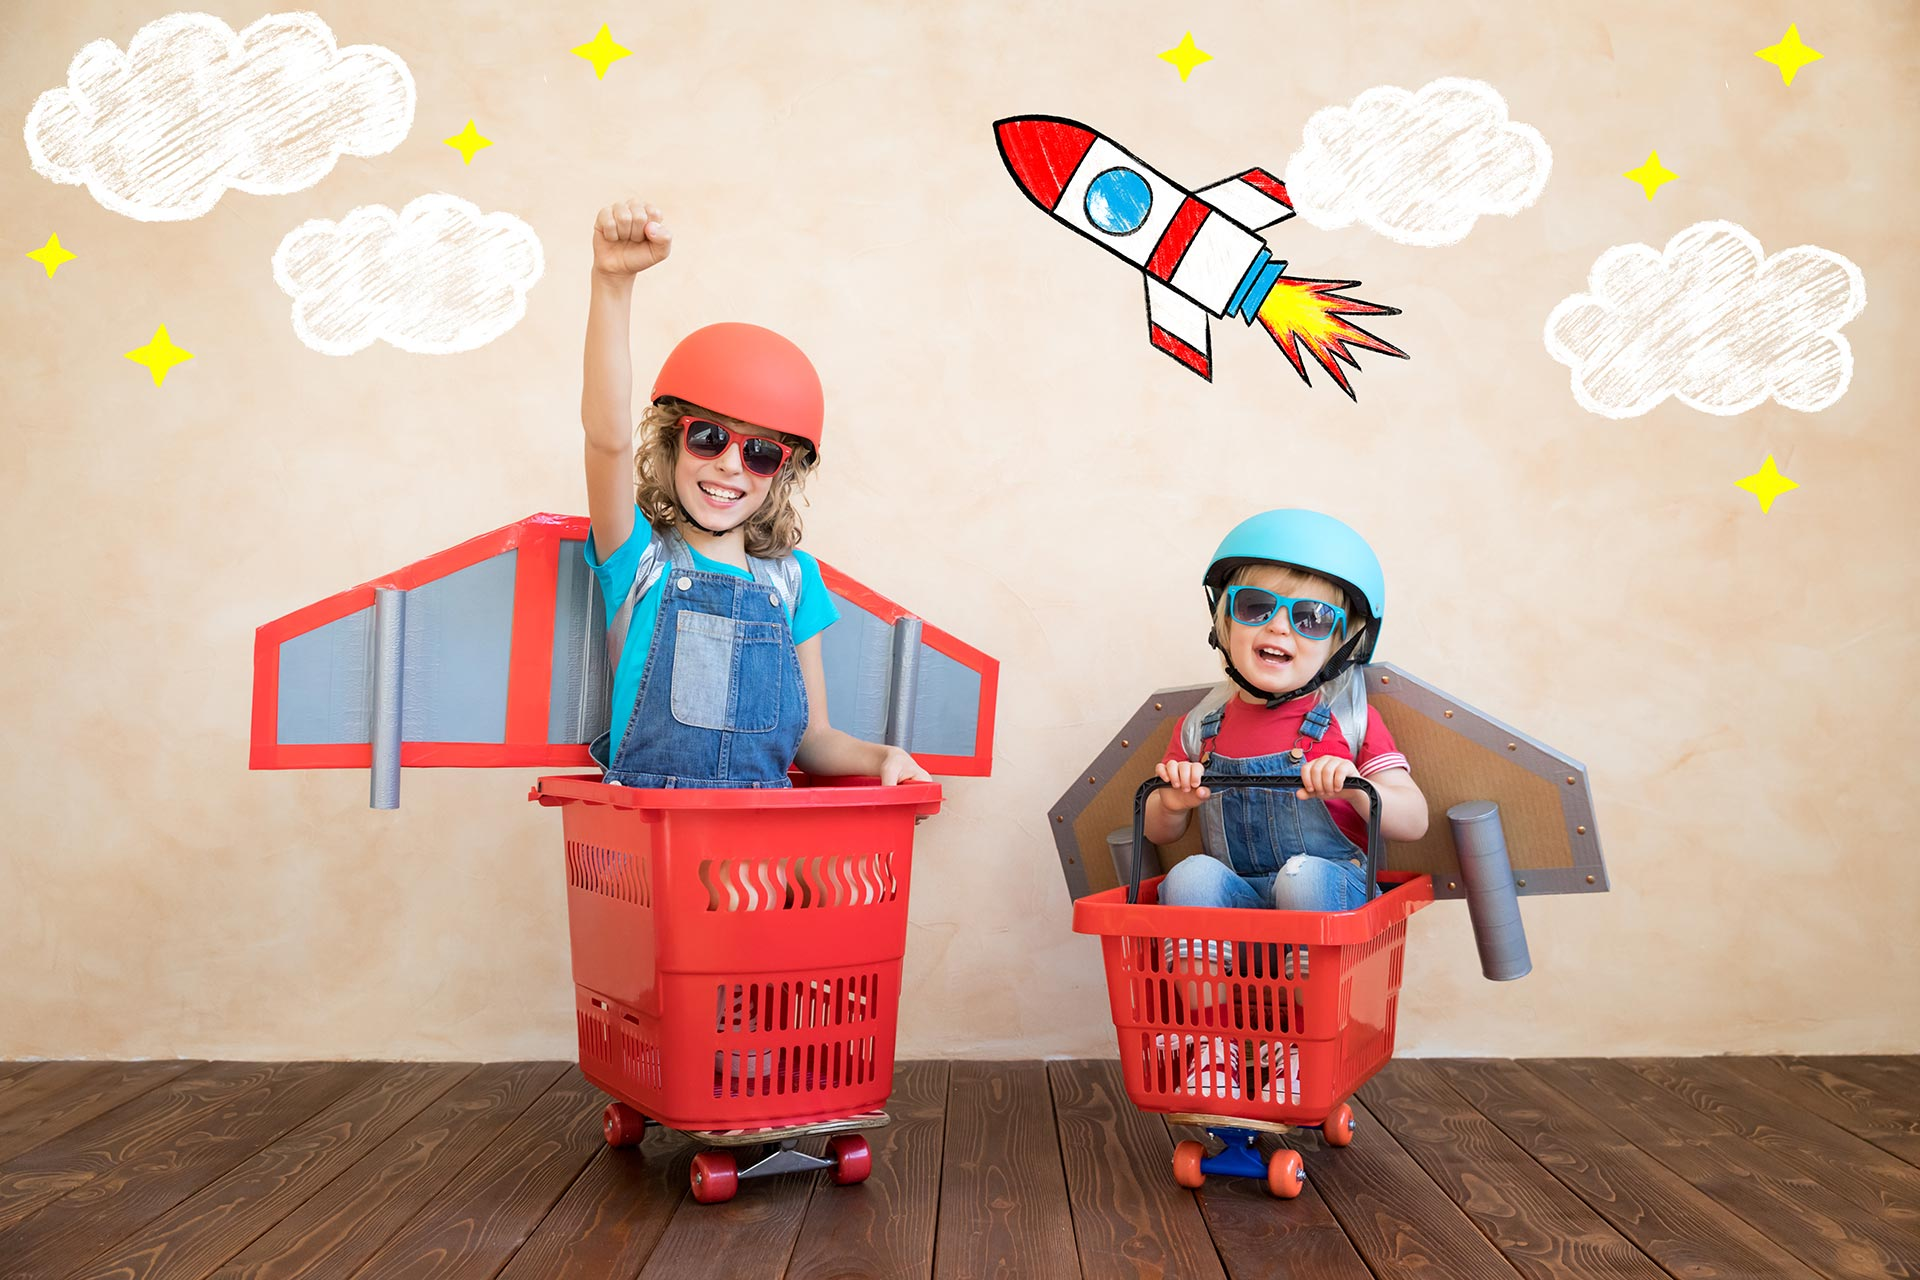 ricosta pepino kinderschuhe onlineshop relaunch E-Commerce Multichannel System